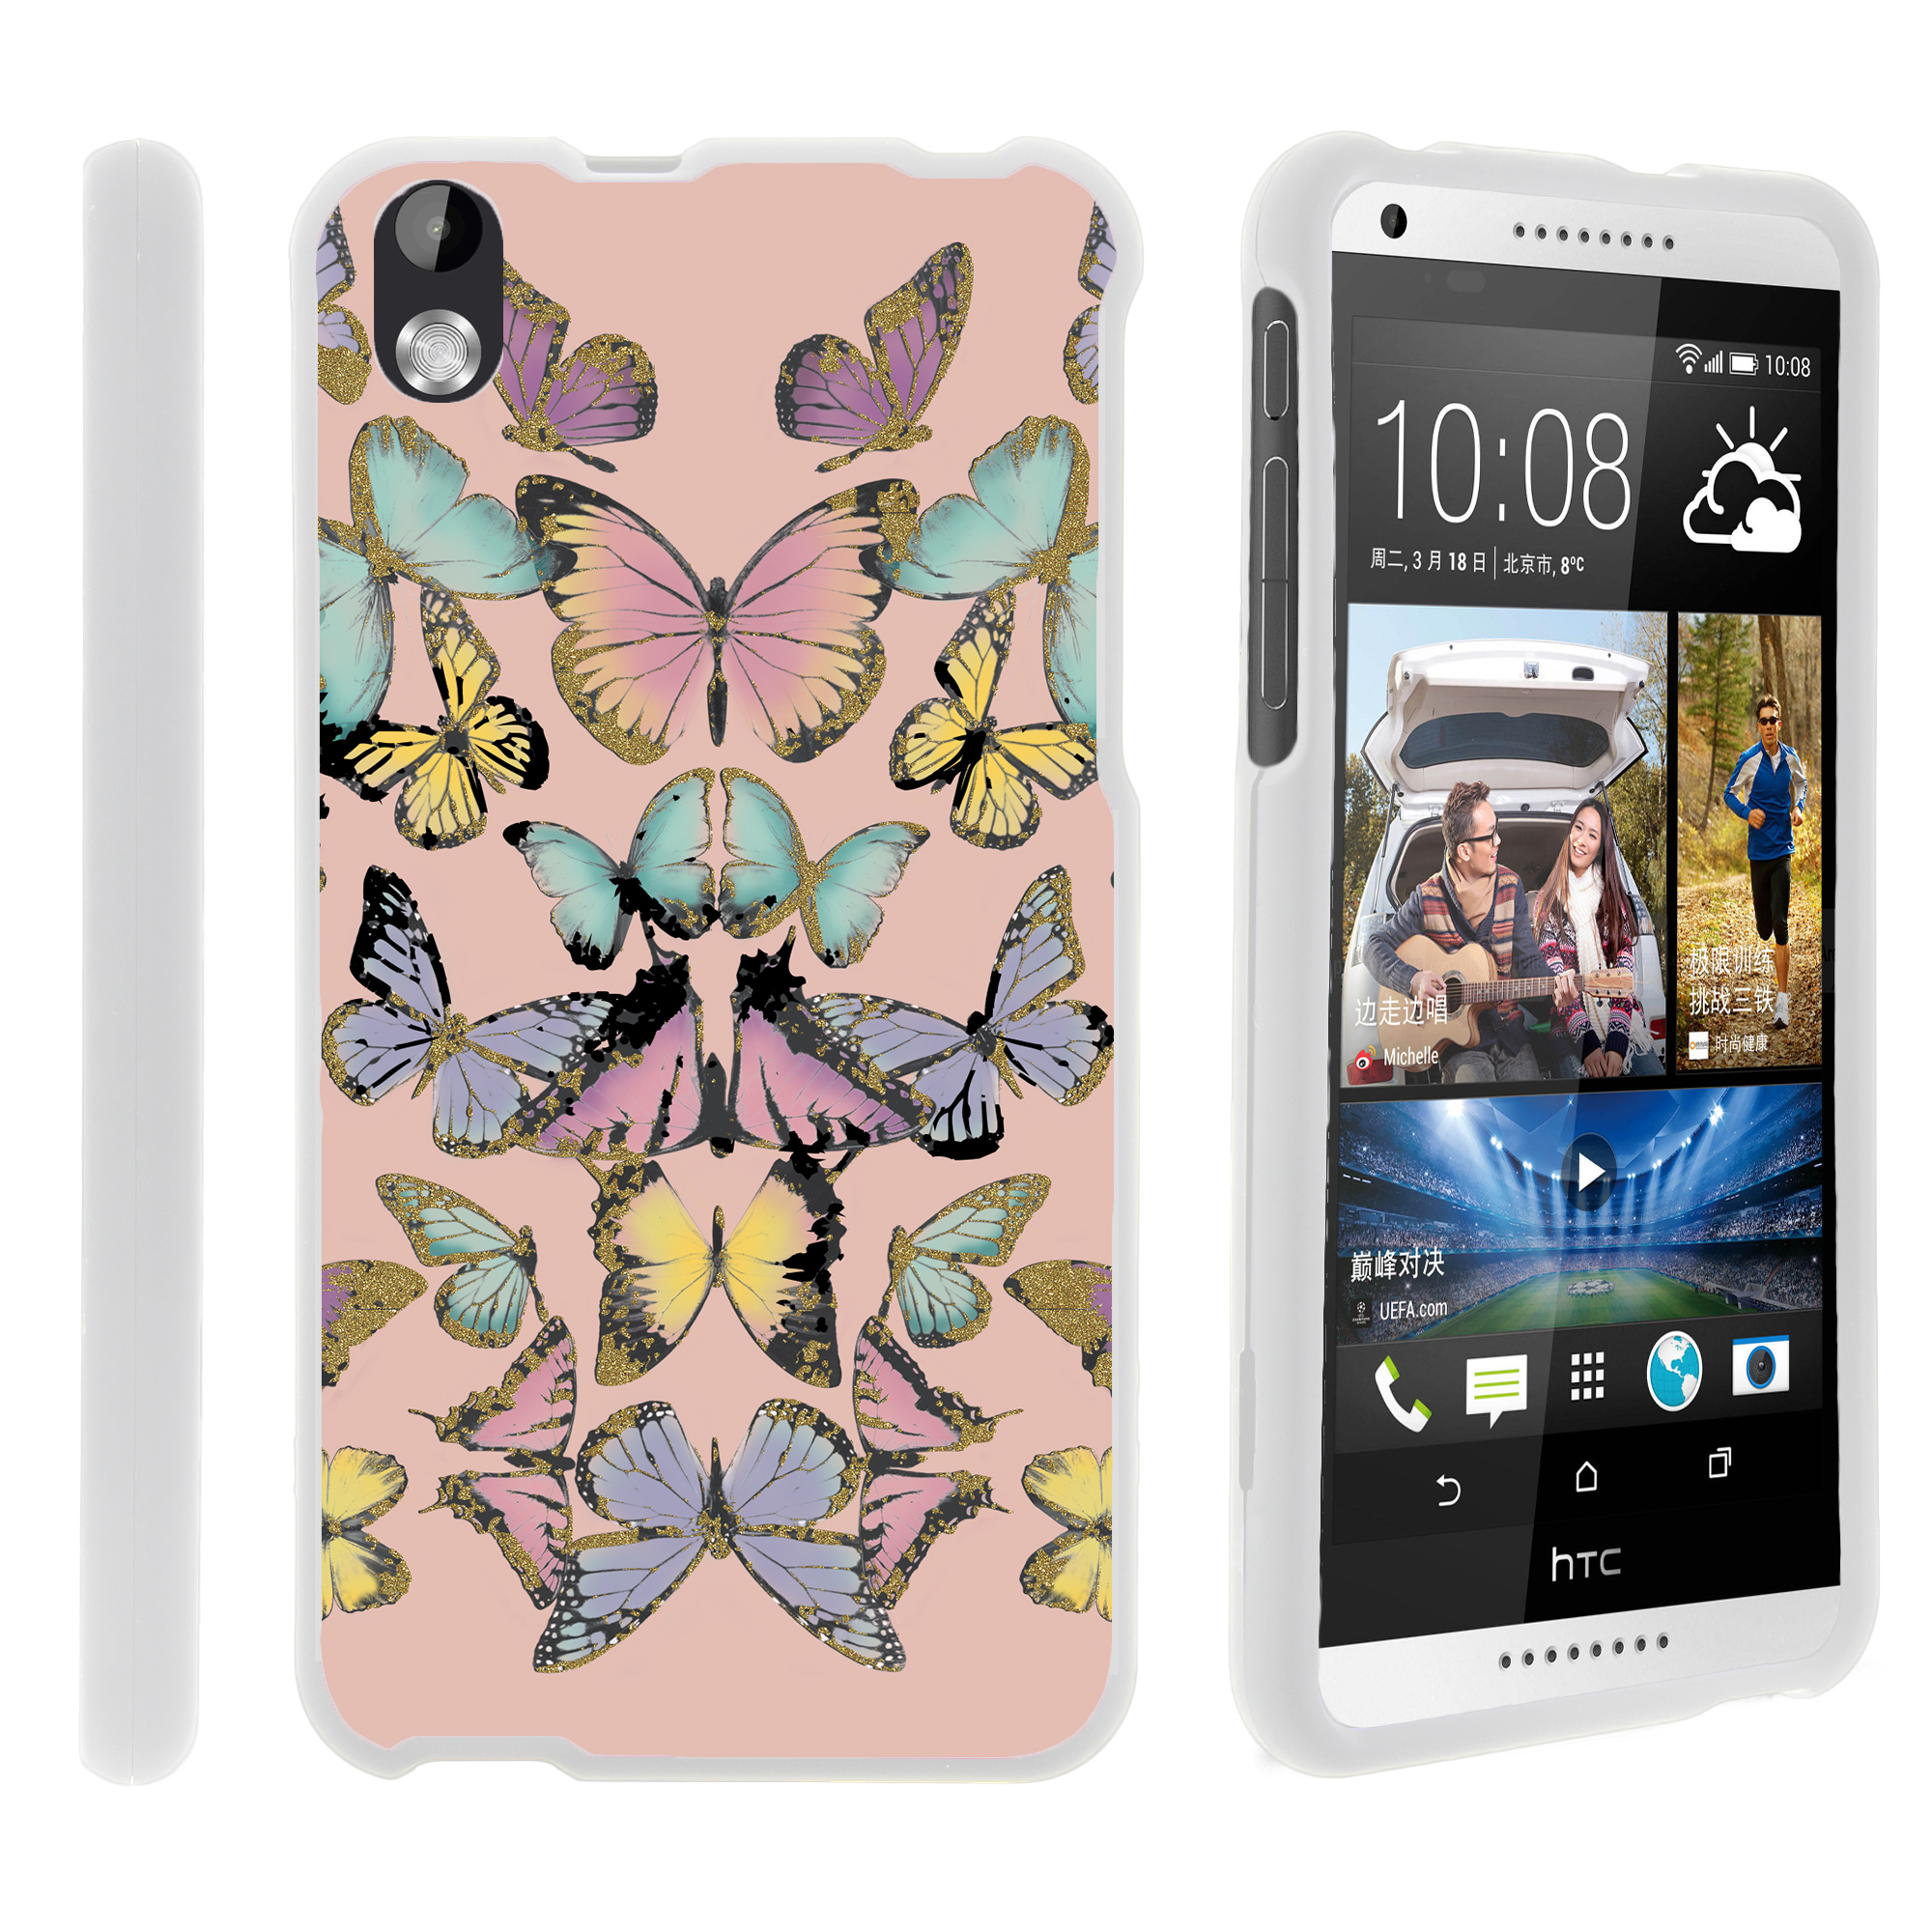 HTC Desire 816, [SNAP SHELL][White] Hard White Plastic Case with Non Slip Matte Coating with Custom Designs - Butterfly Symmetry